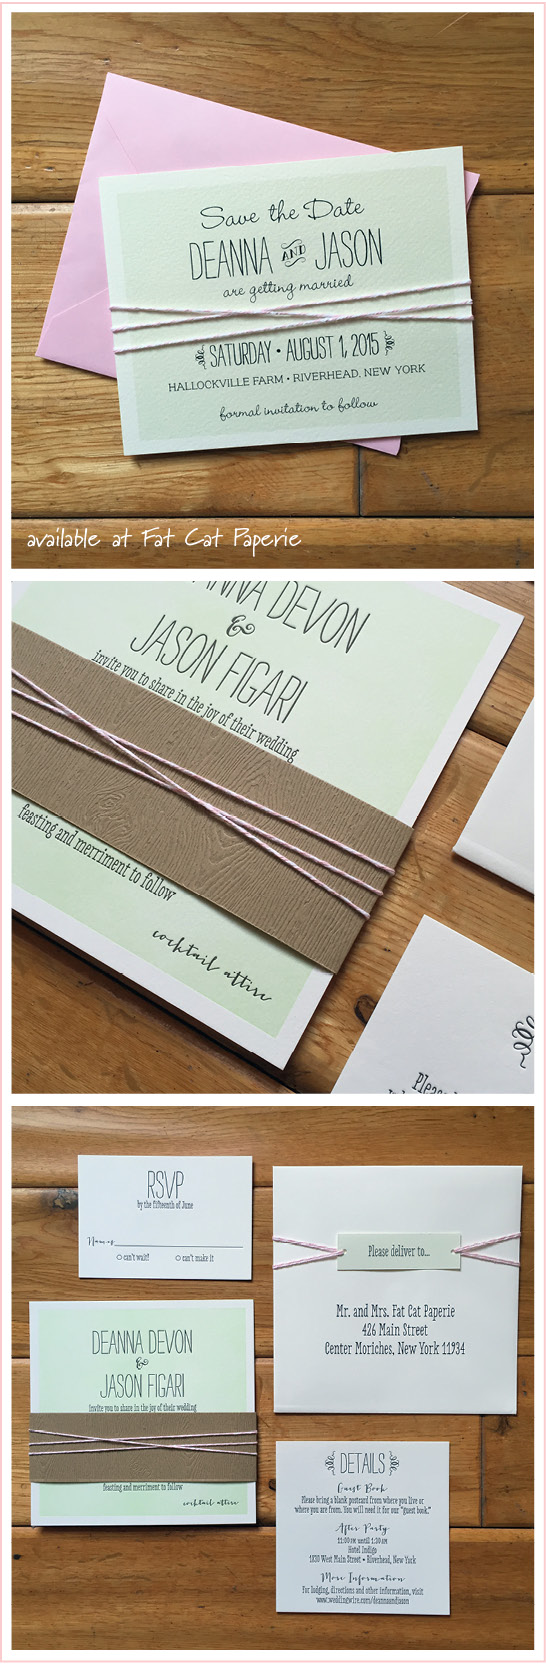 Celebrating August   Deanna + Jason   Mint and Pink Invitation with woodgrain bellyband and twine